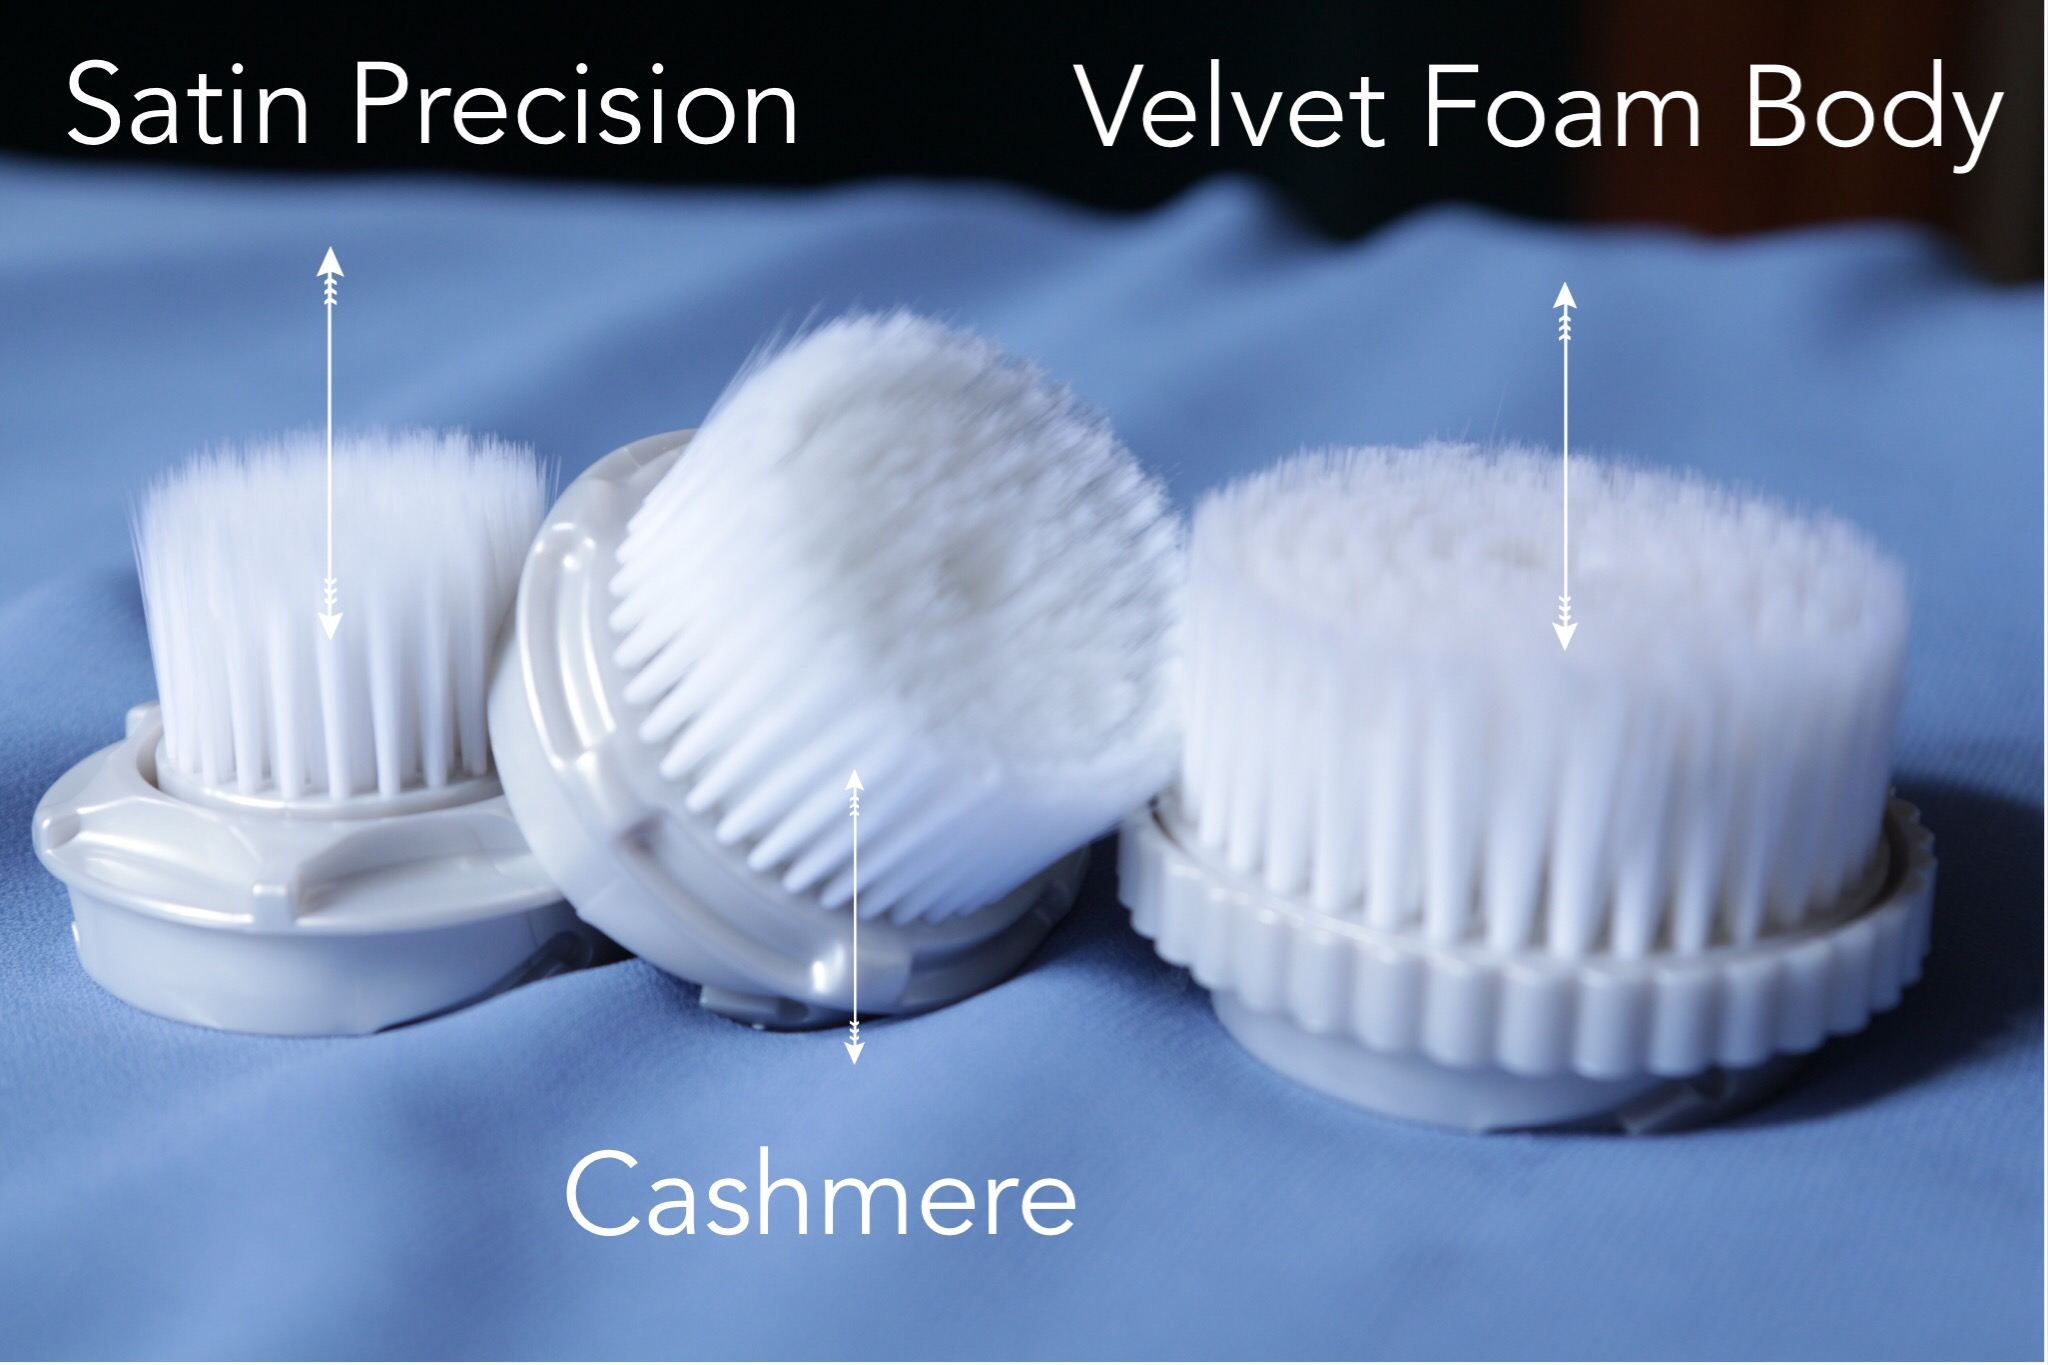 clarisonic replacement brush - Luxury Range